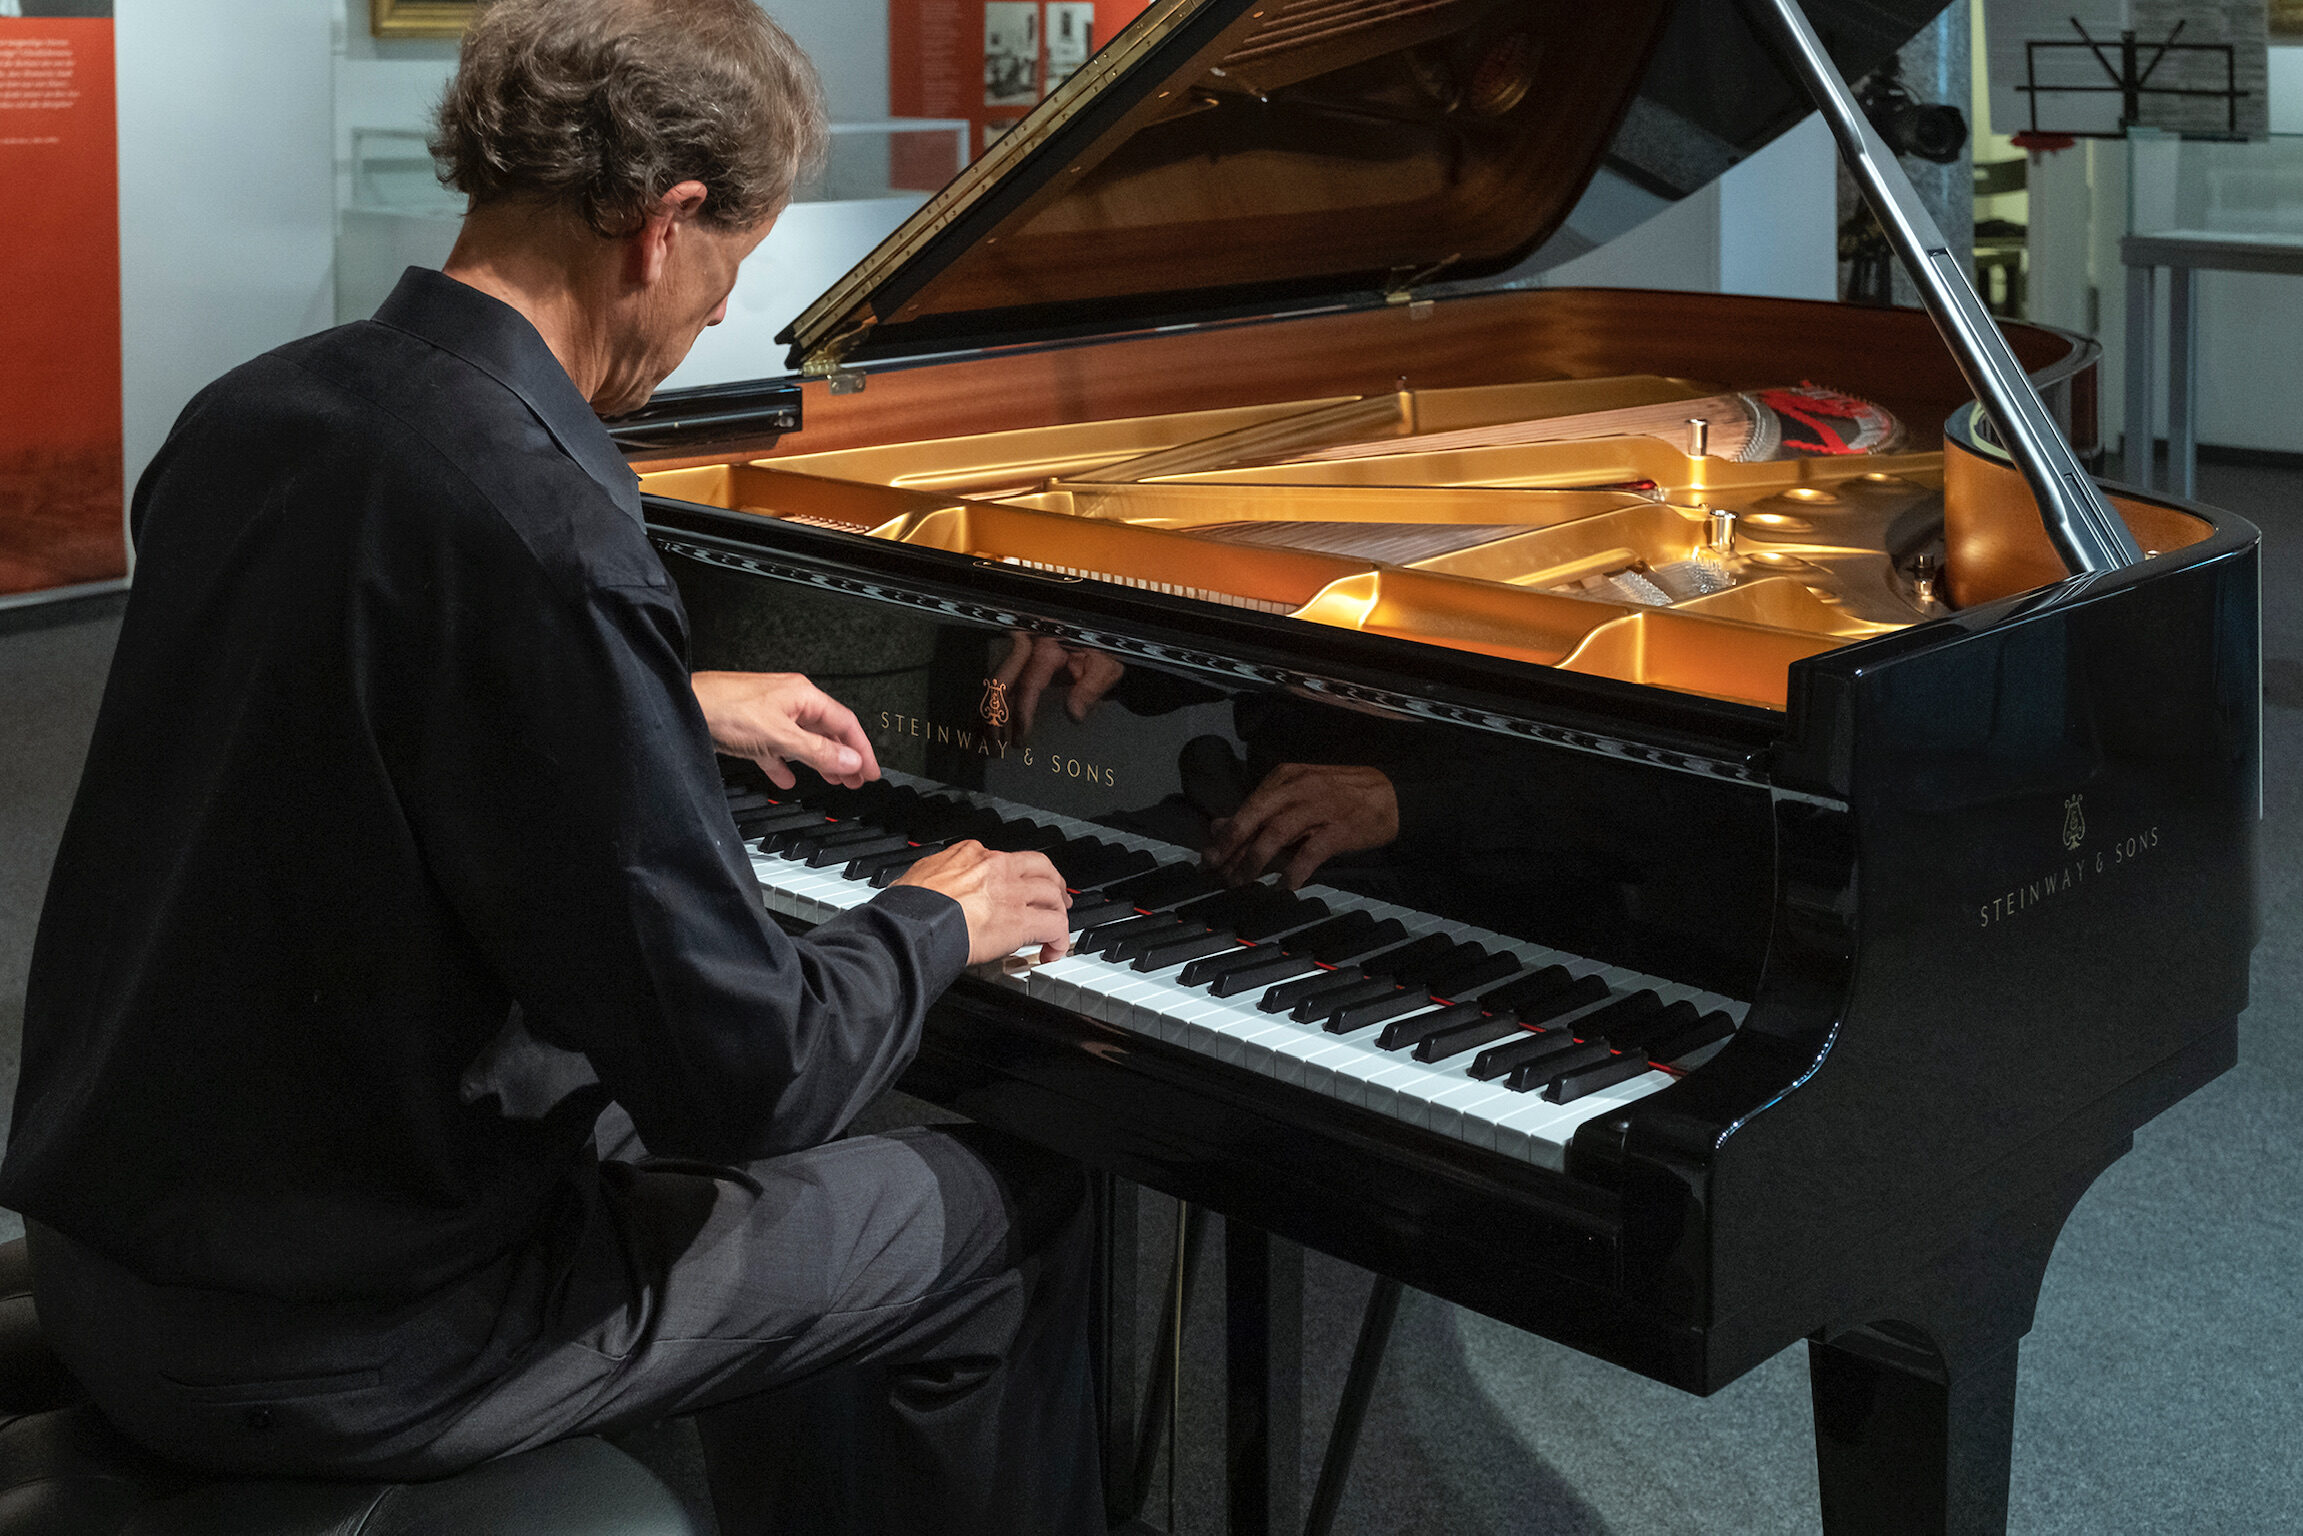 Dr. David Korevaar playing a Steinway concert grand.